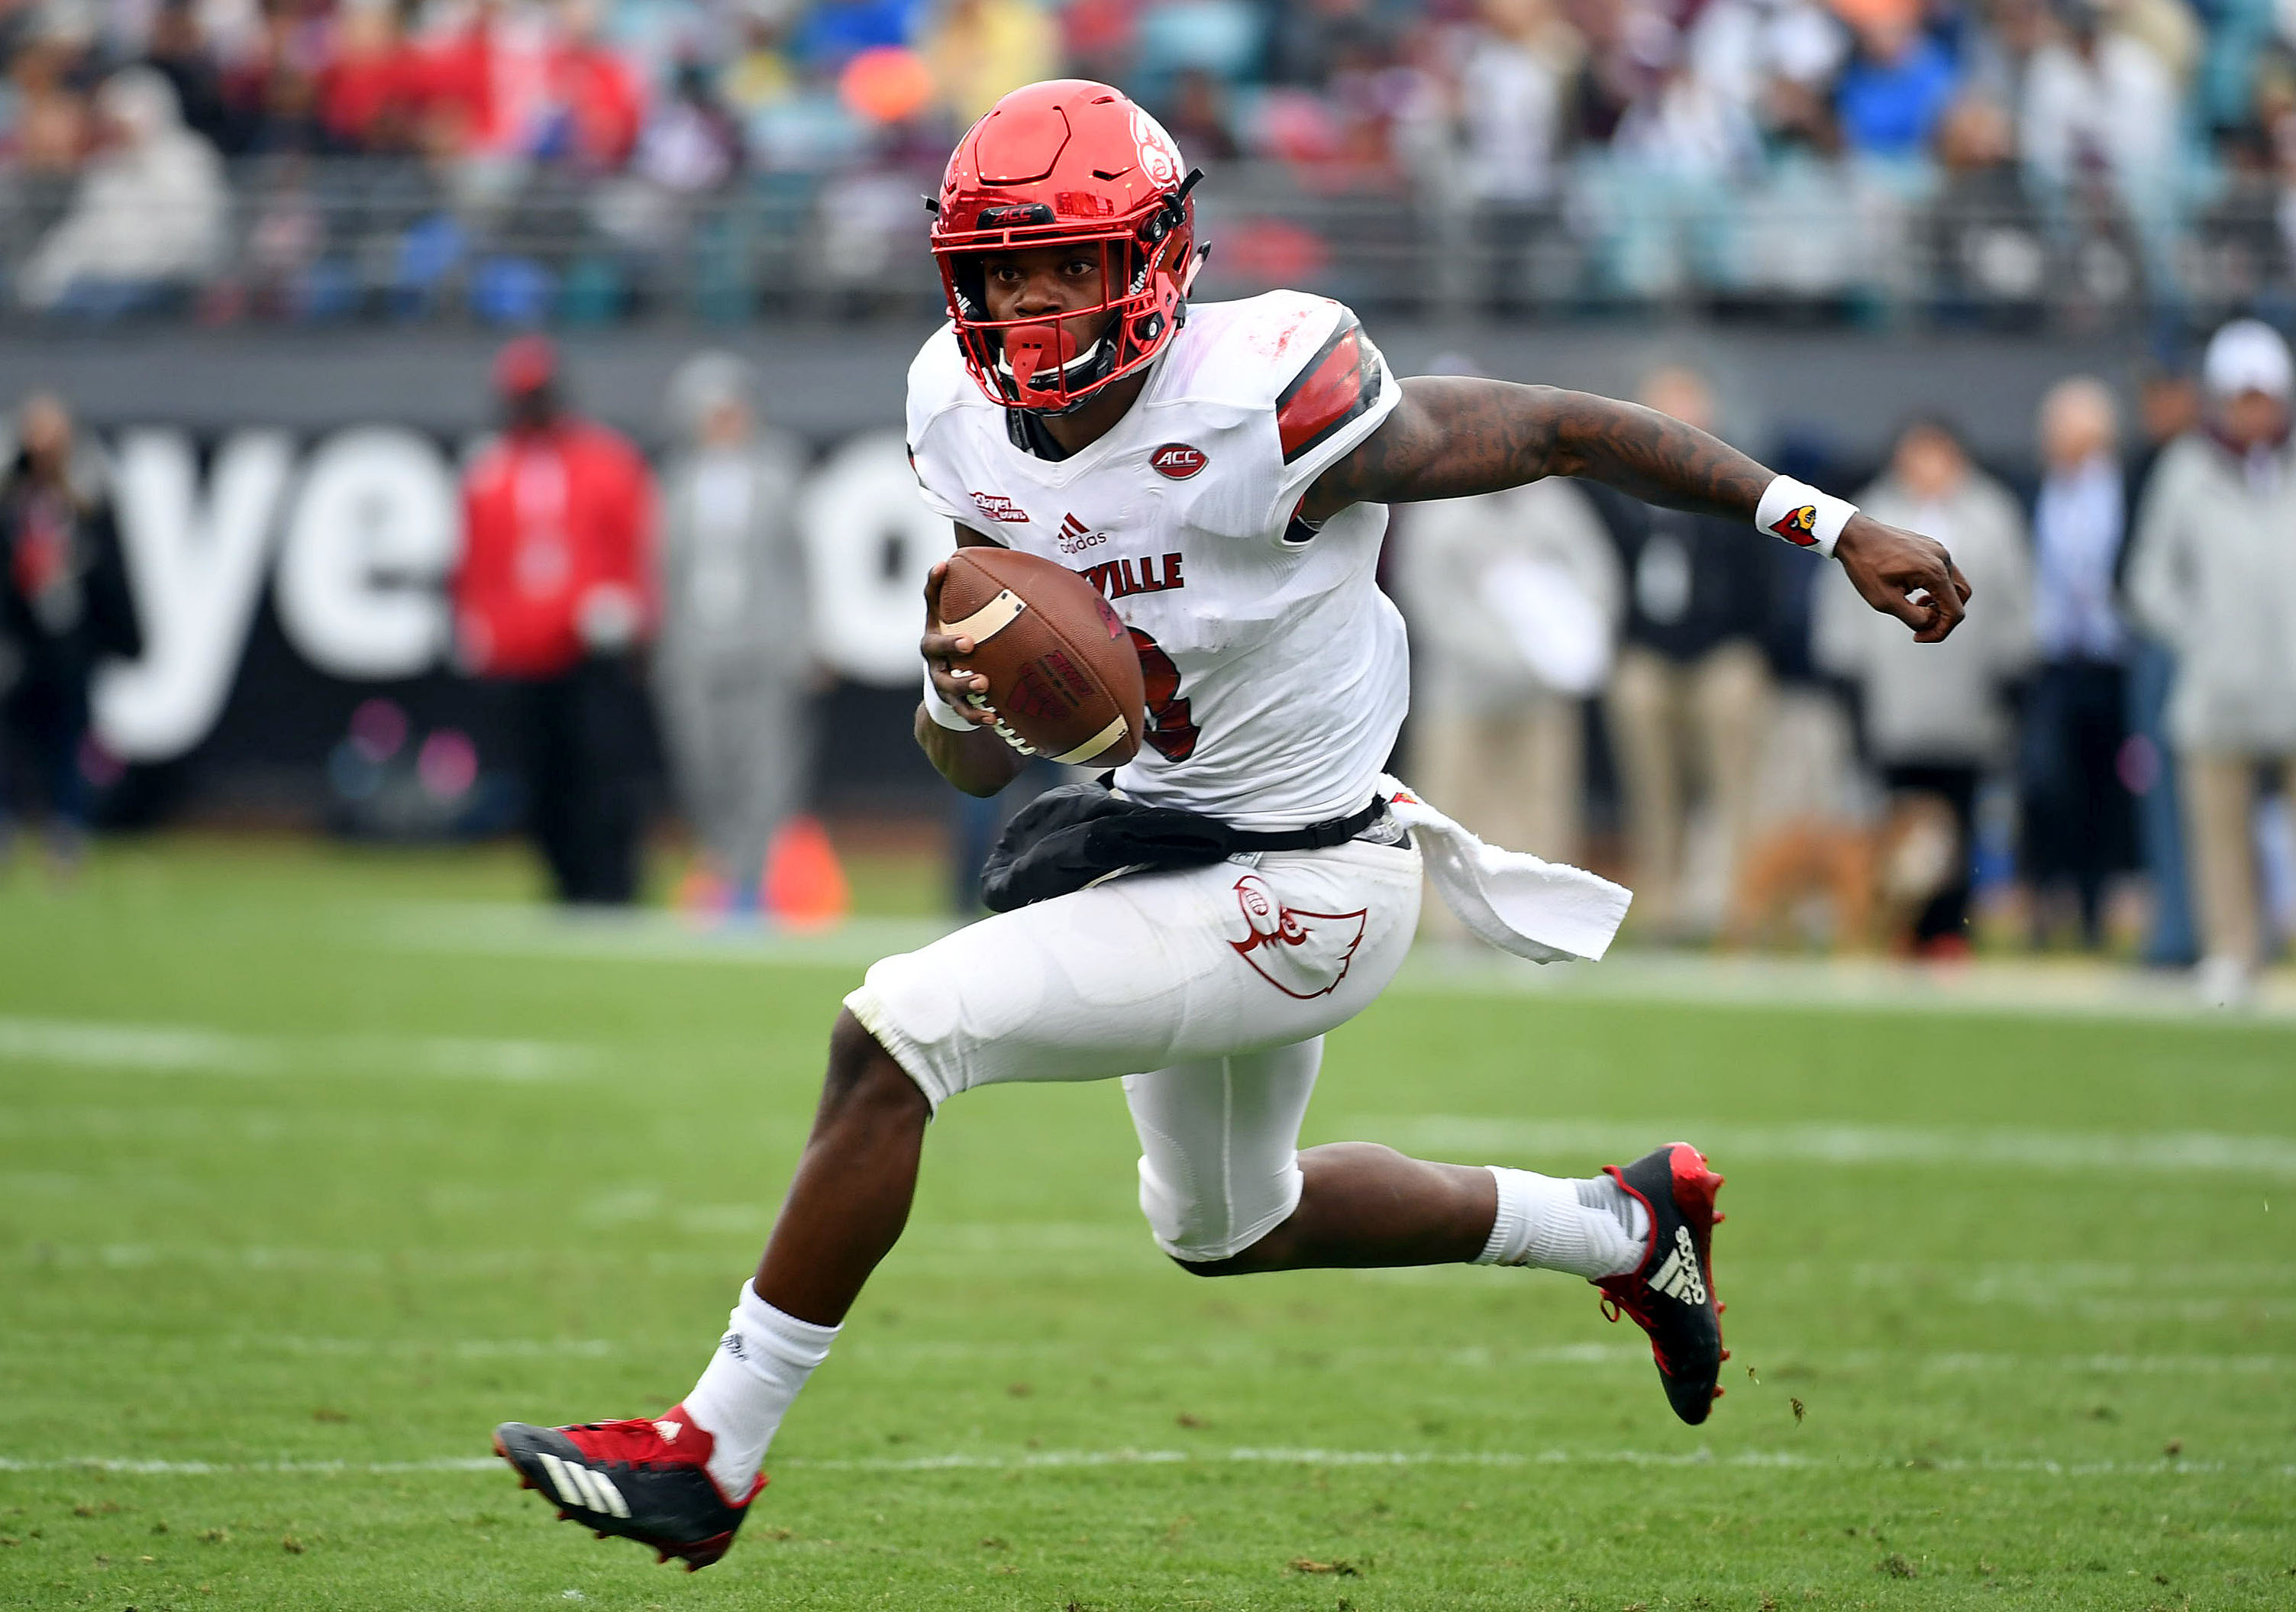 f5a4acae3 Louisville Cardinals quarterback Lamar Jackson runs for a touchdown during  the first half against the Mississippi State Bulldogs in the 2017 TaxSlayer  Bowl ...